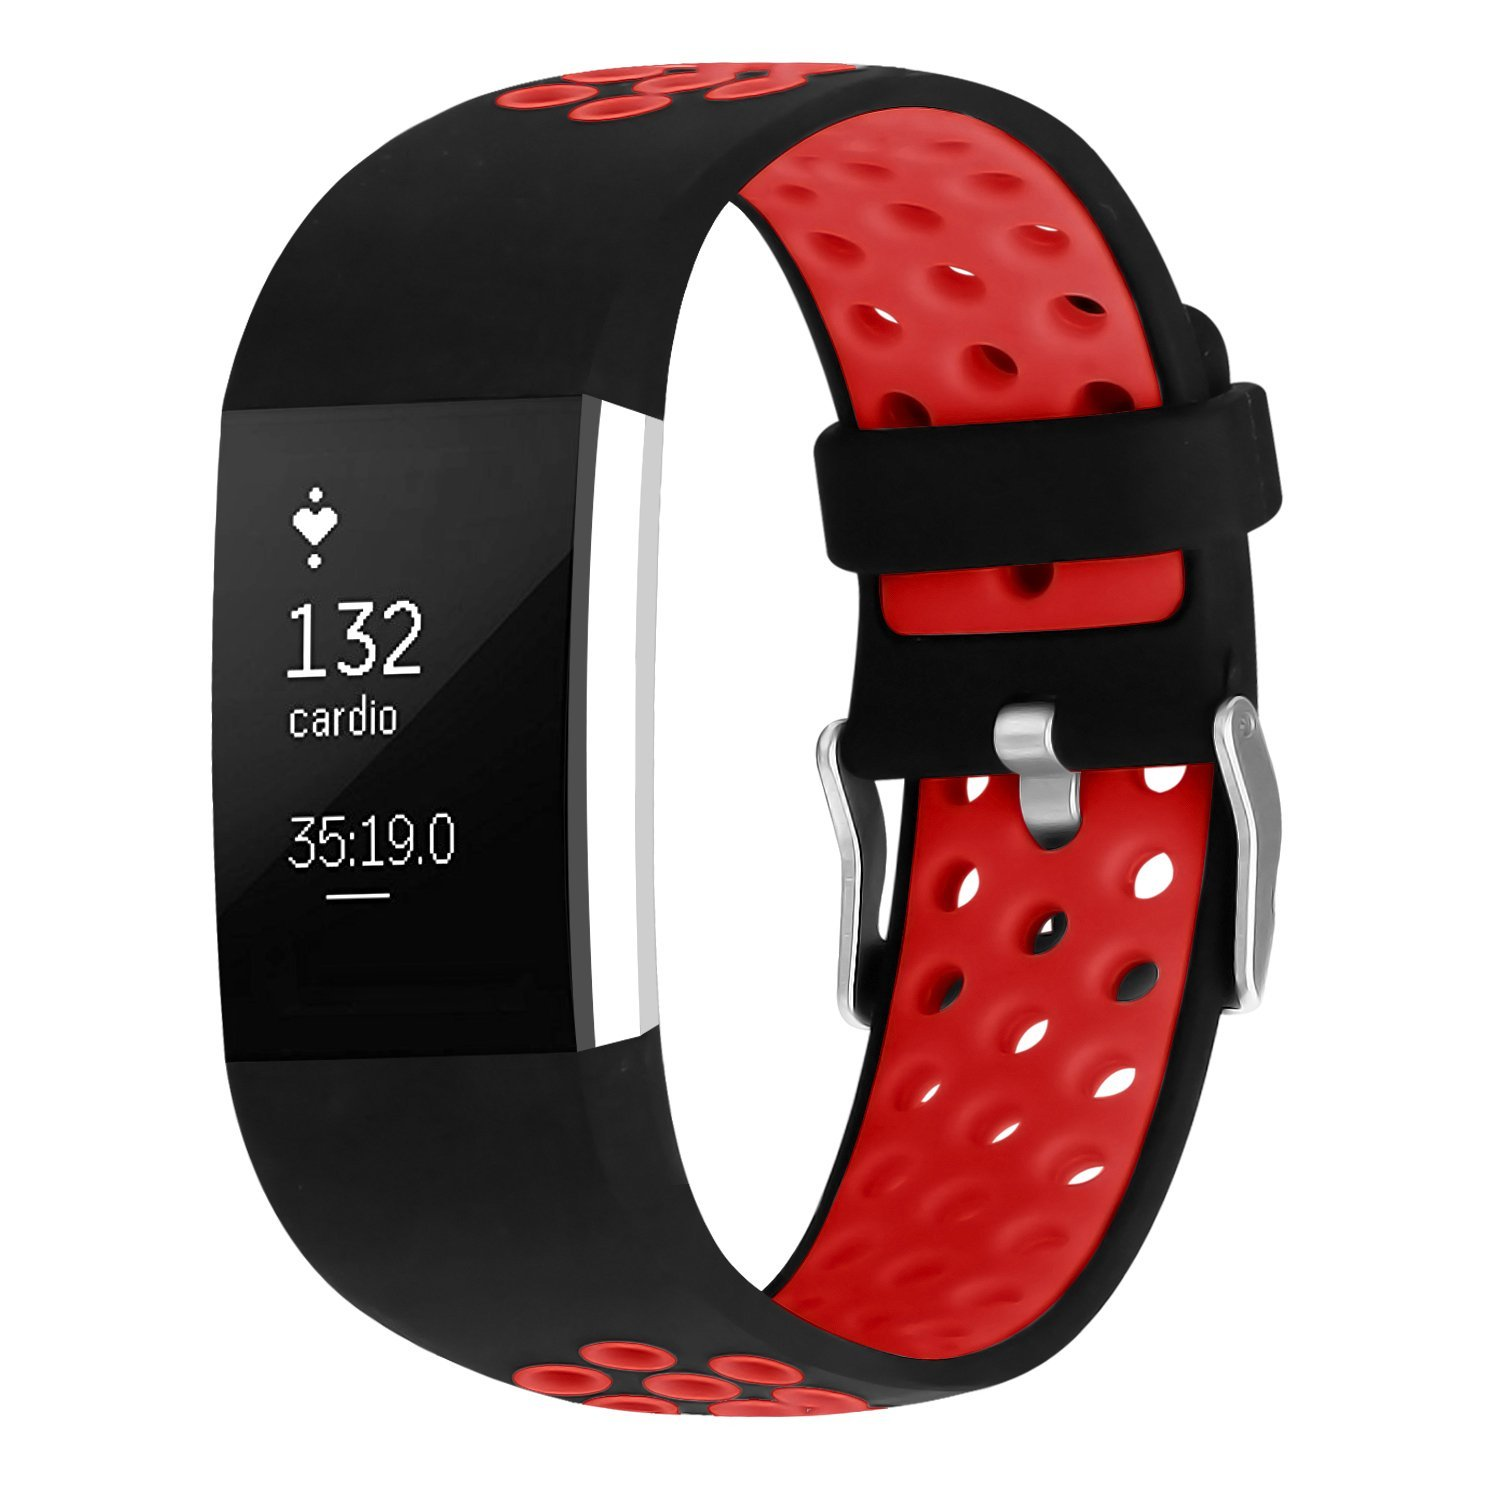 iGK For Fitbit Charge 2 Bands Soft Silicone Adjustable Replacement Sport Strap for Fitbit Charge 2 Smartwatch Fitness Wristband